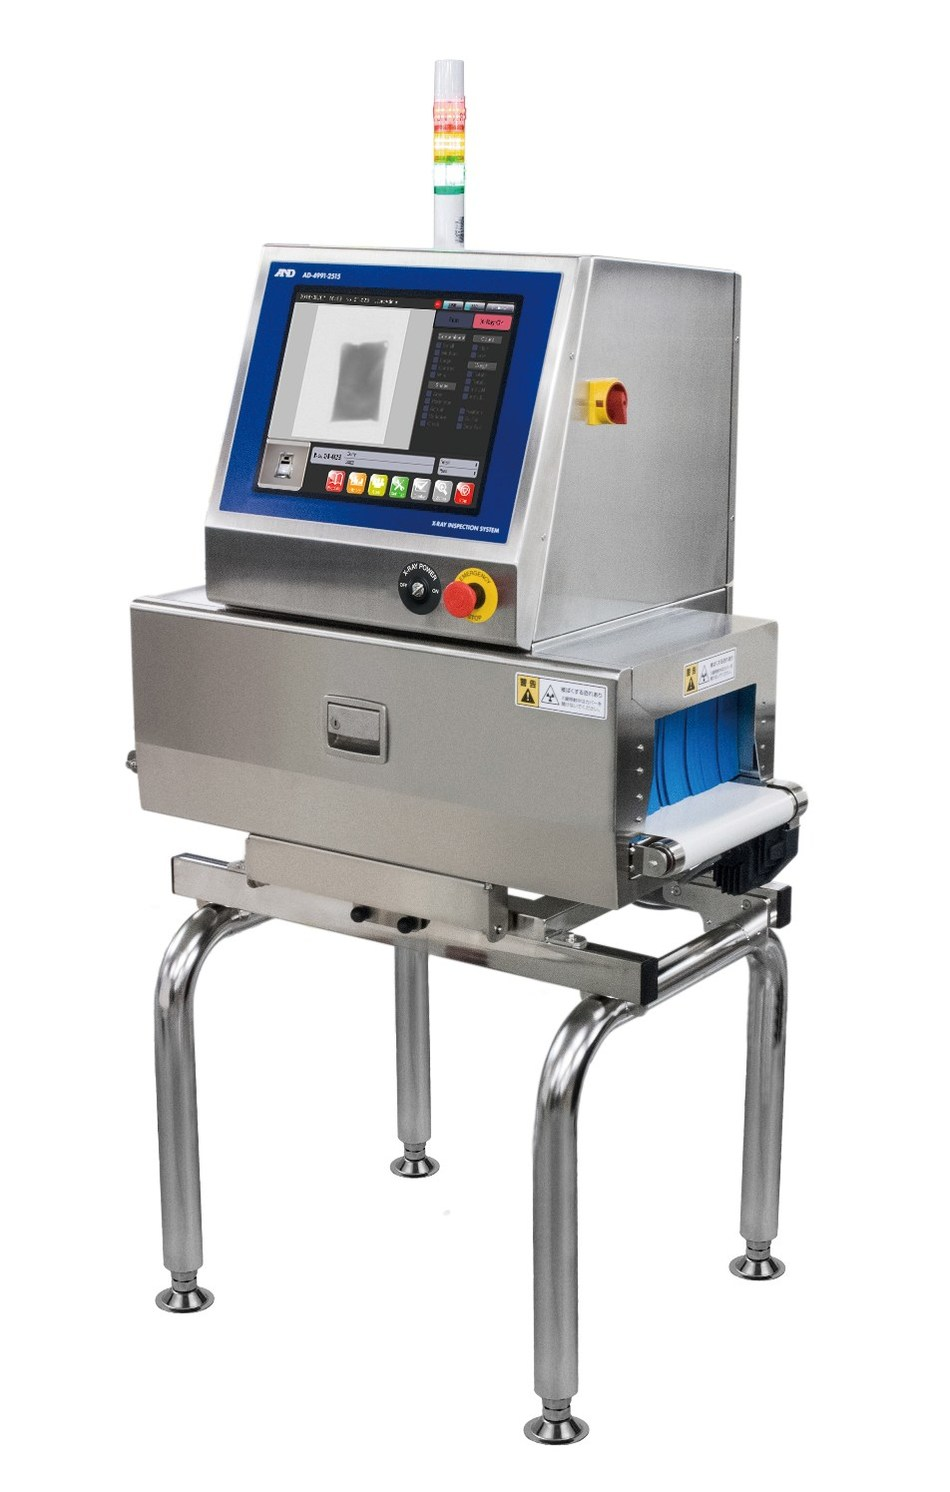 The ProteX X-ray equipment was designed with as compact a footprint as possible, ensuring manufacturers can incorporate the most advanced aspects of product inspection into almost any point of their production processes.